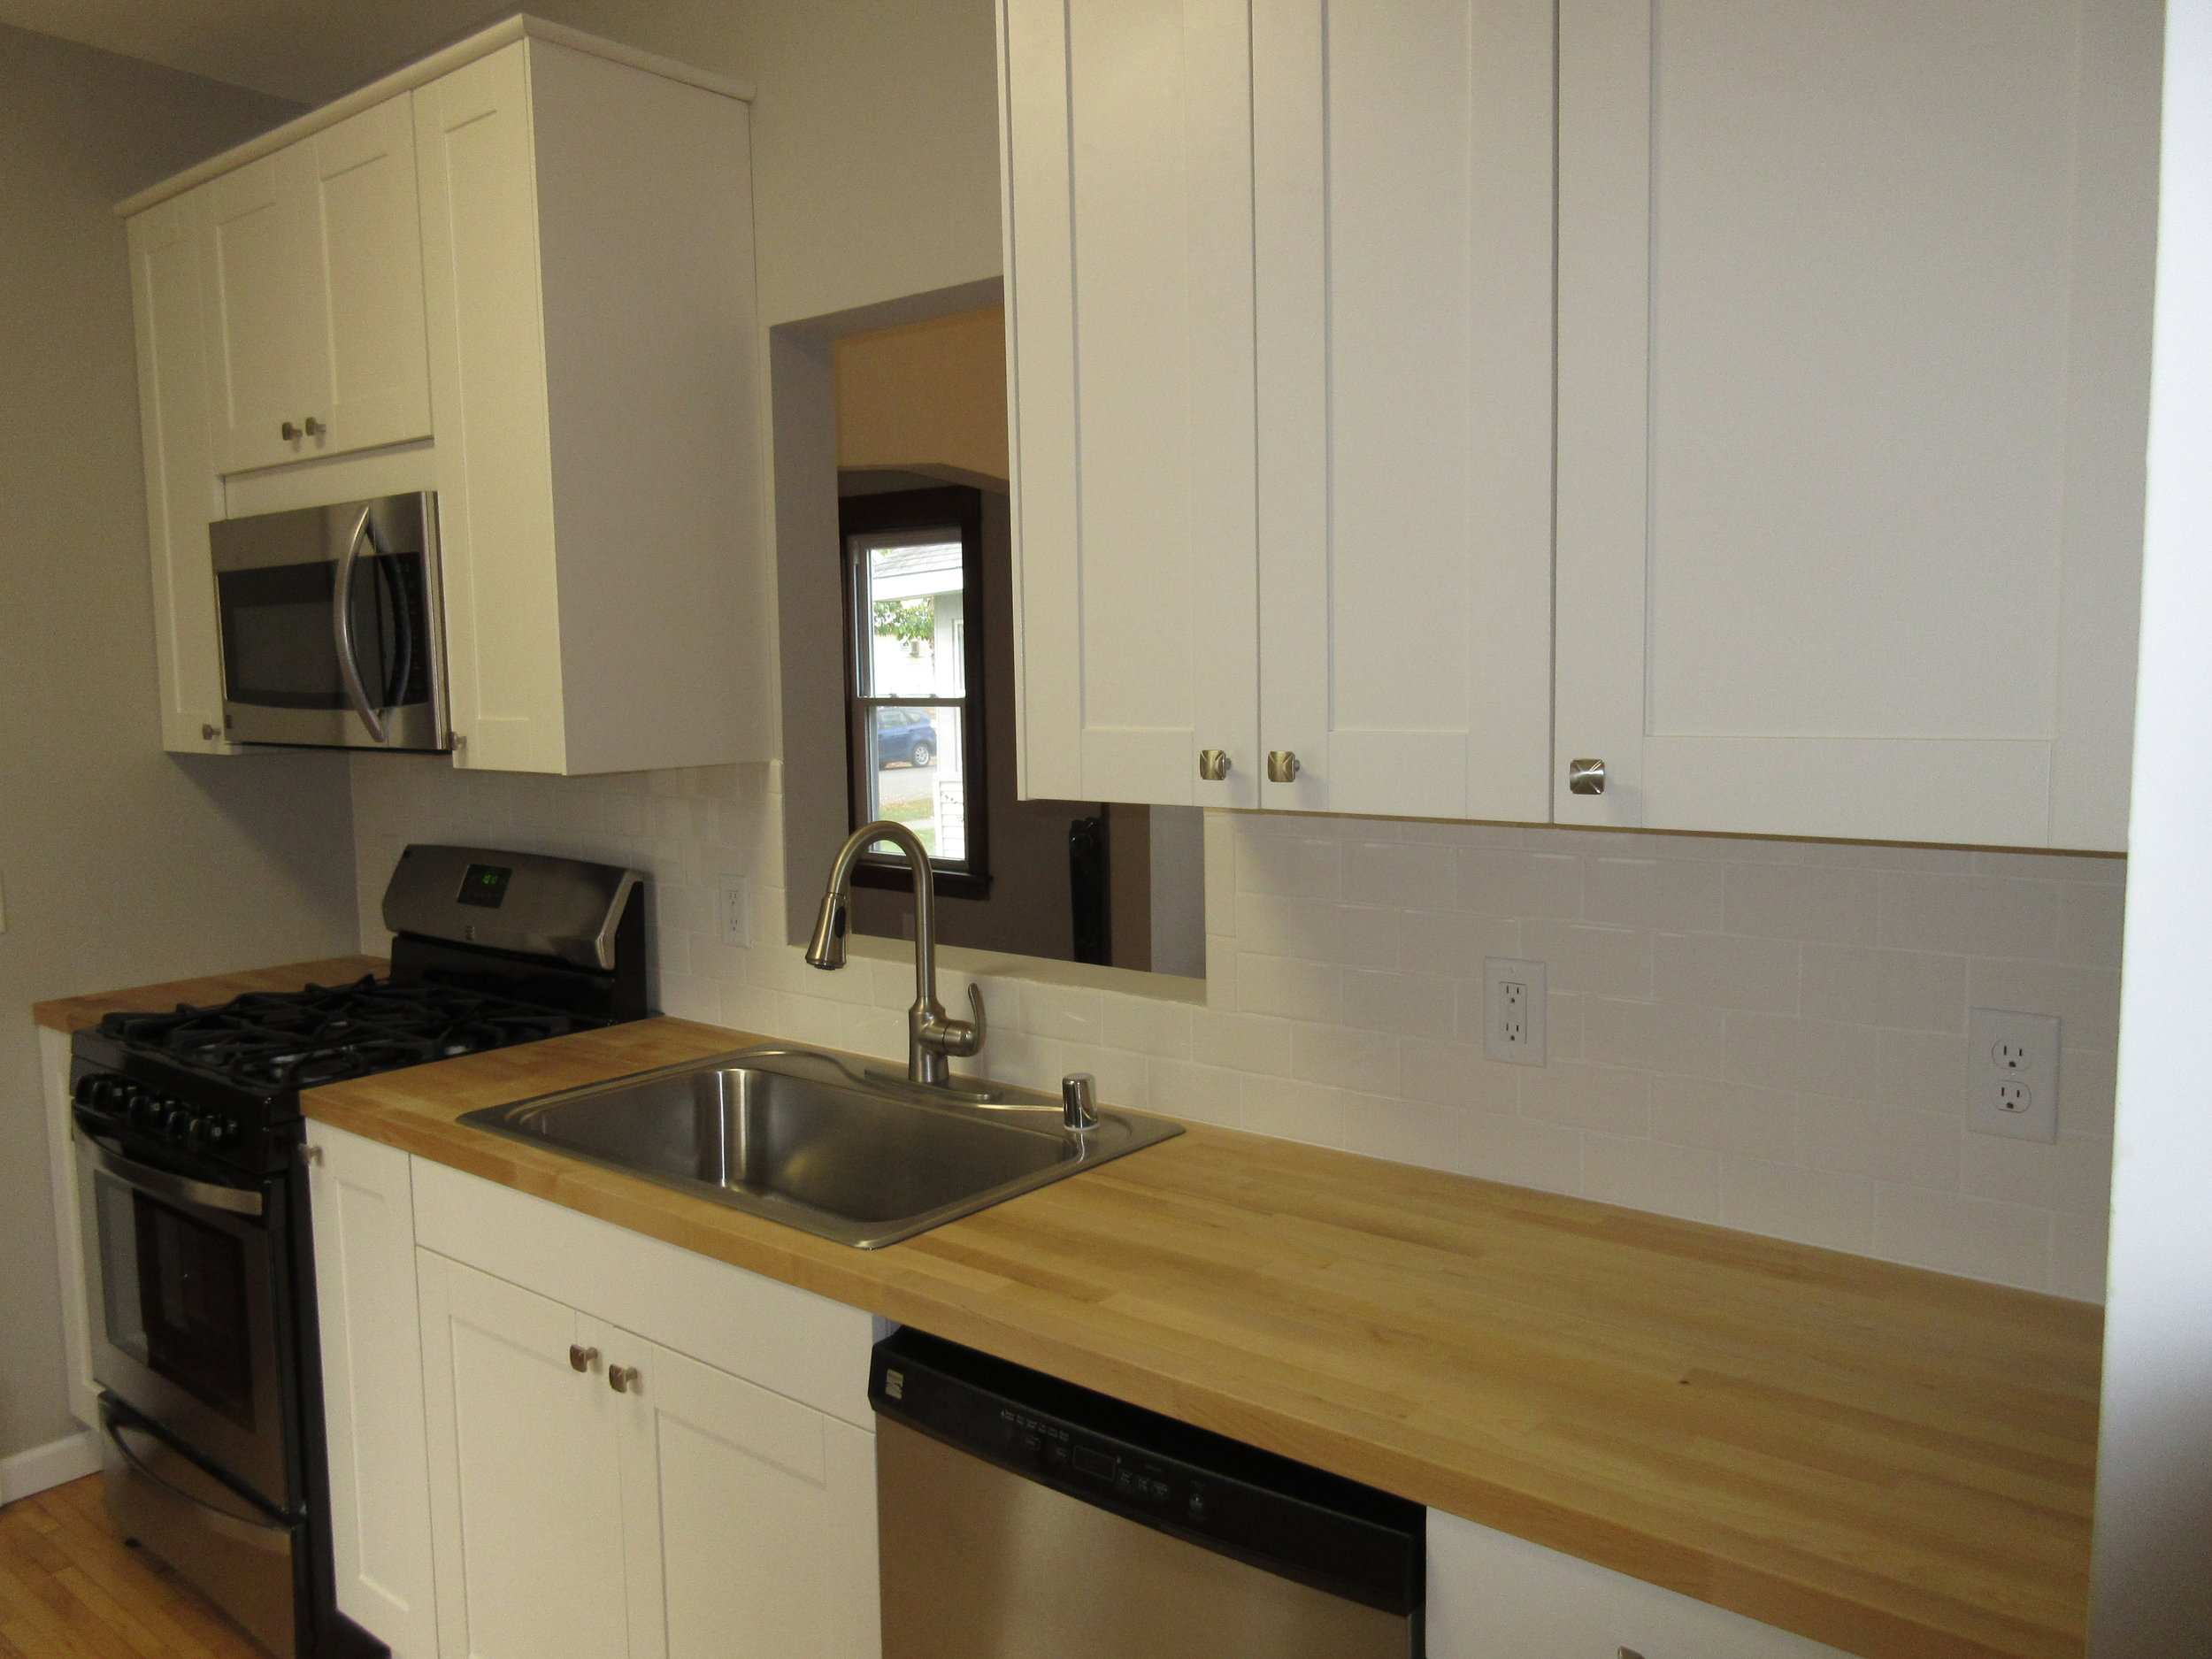 kitchen from back entry.JPG